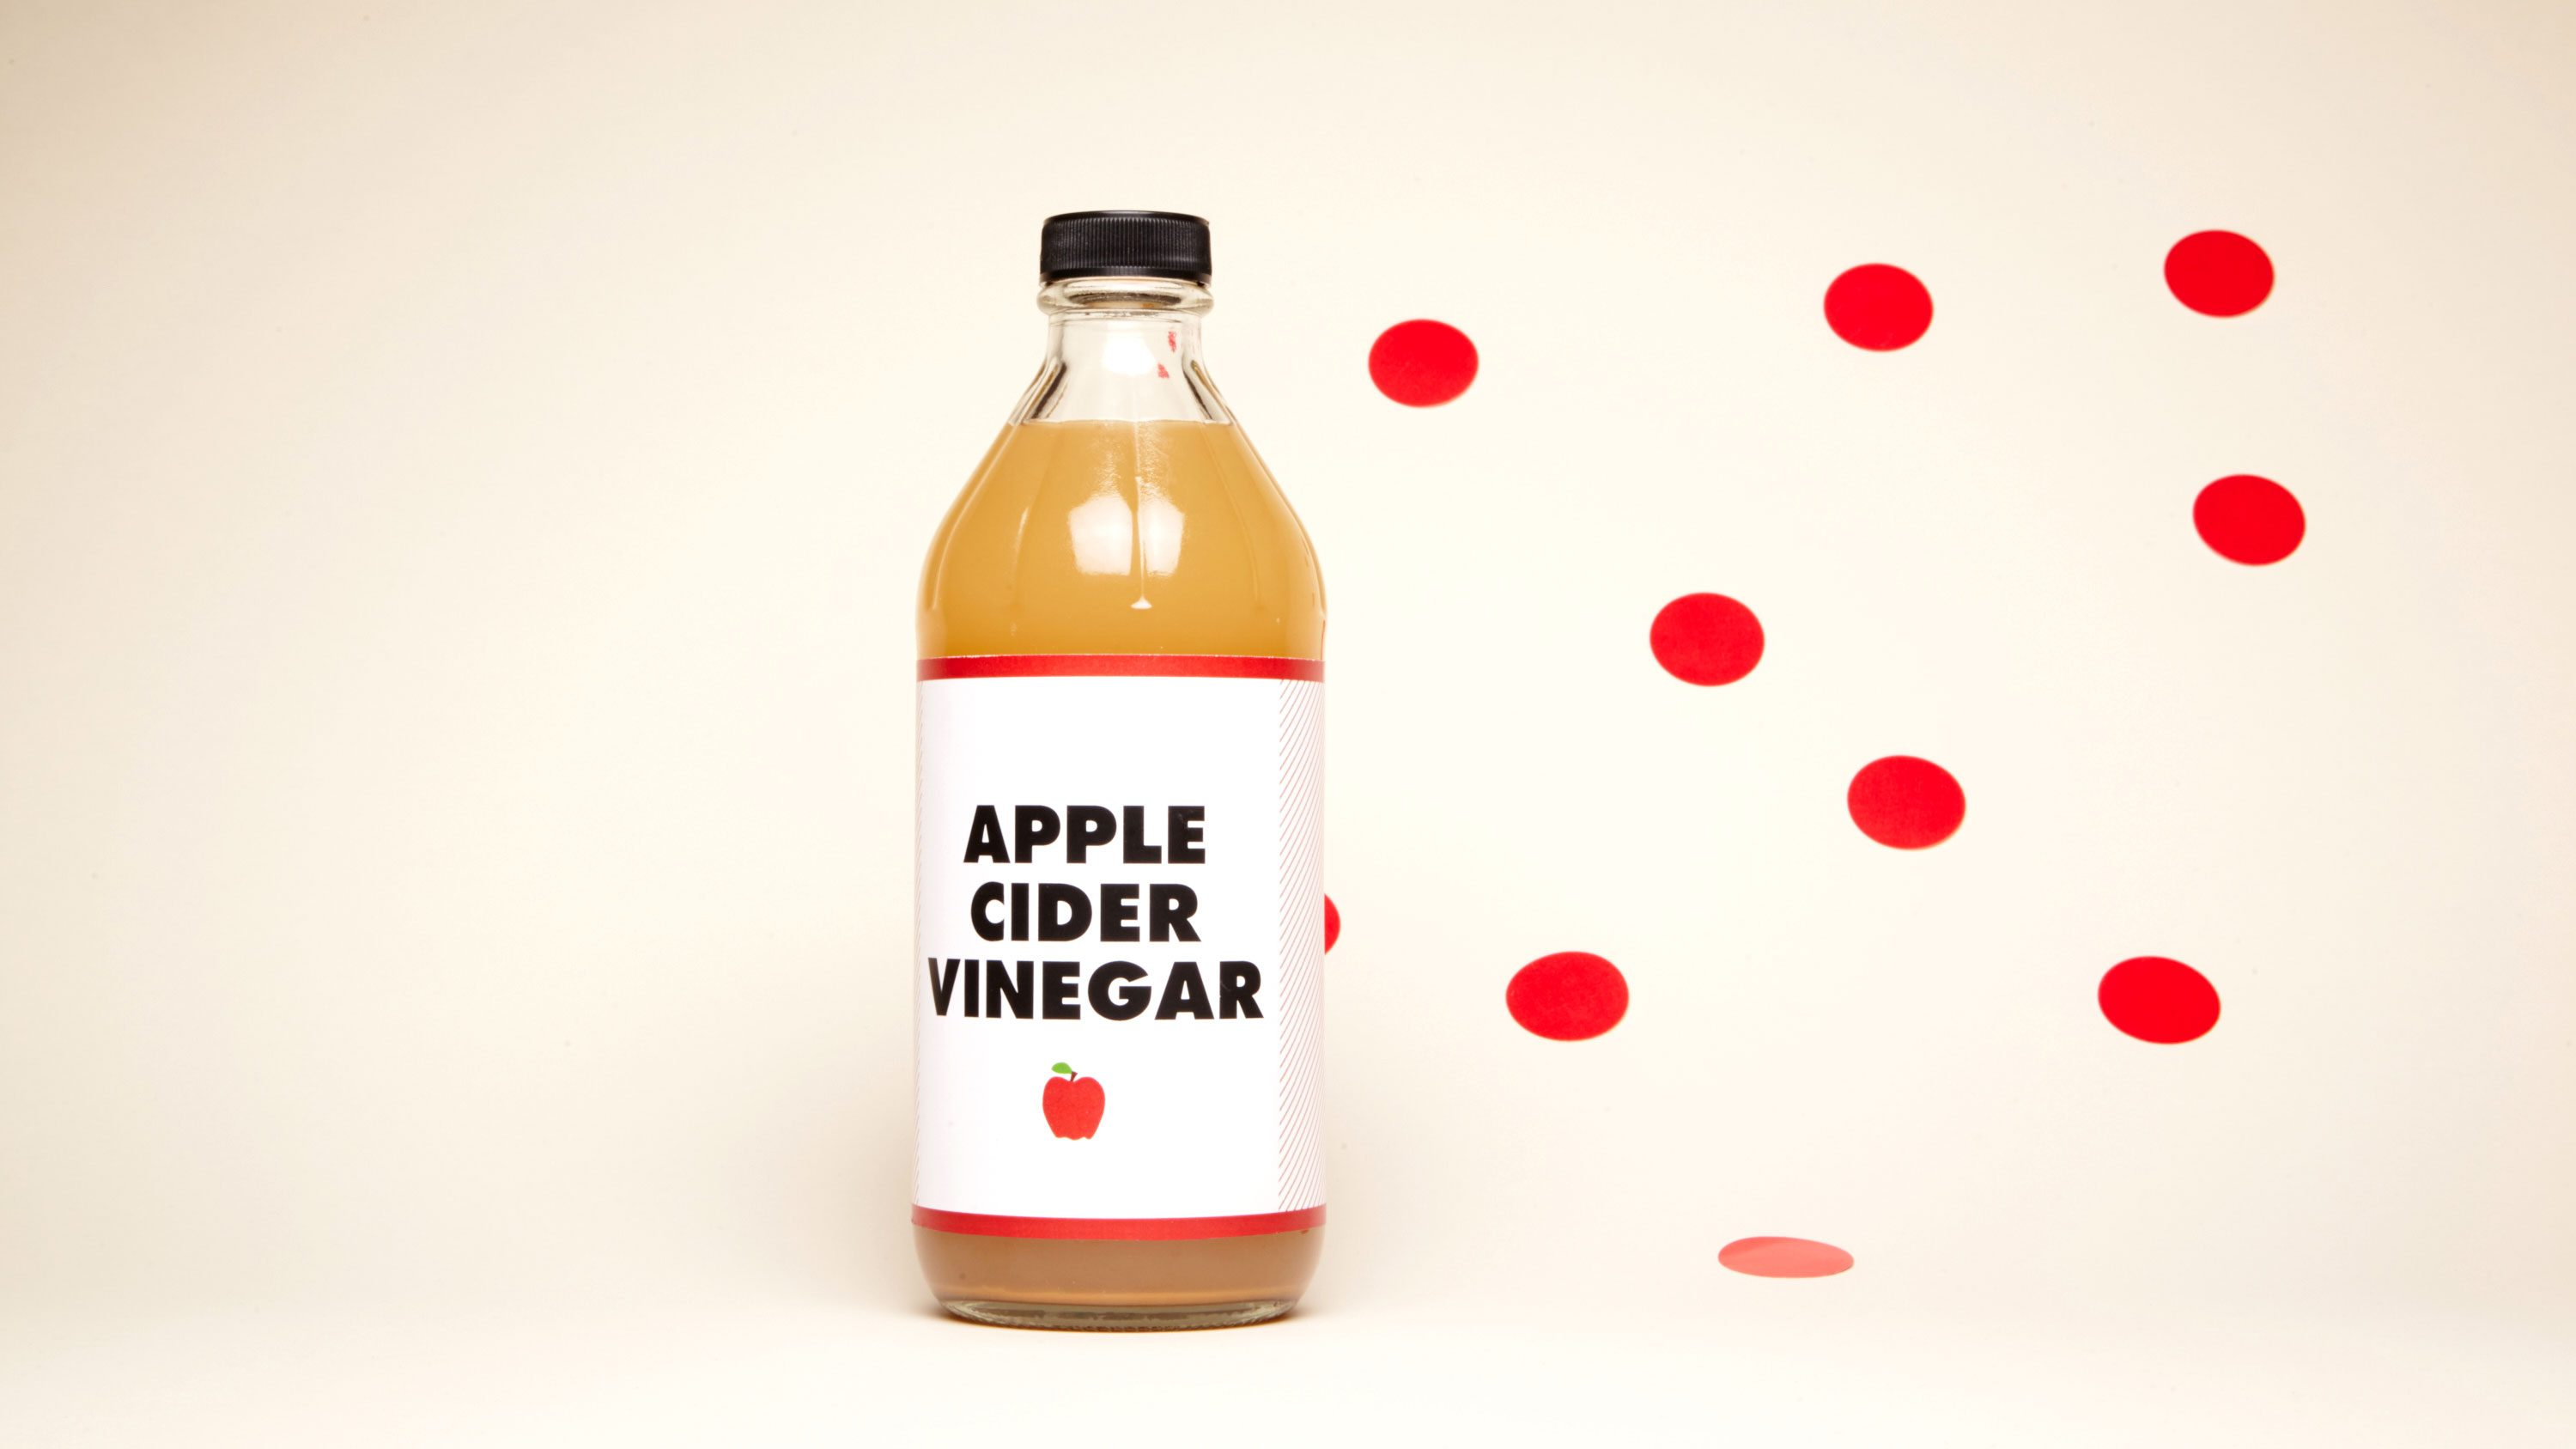 Apple Cider: We can't live without it